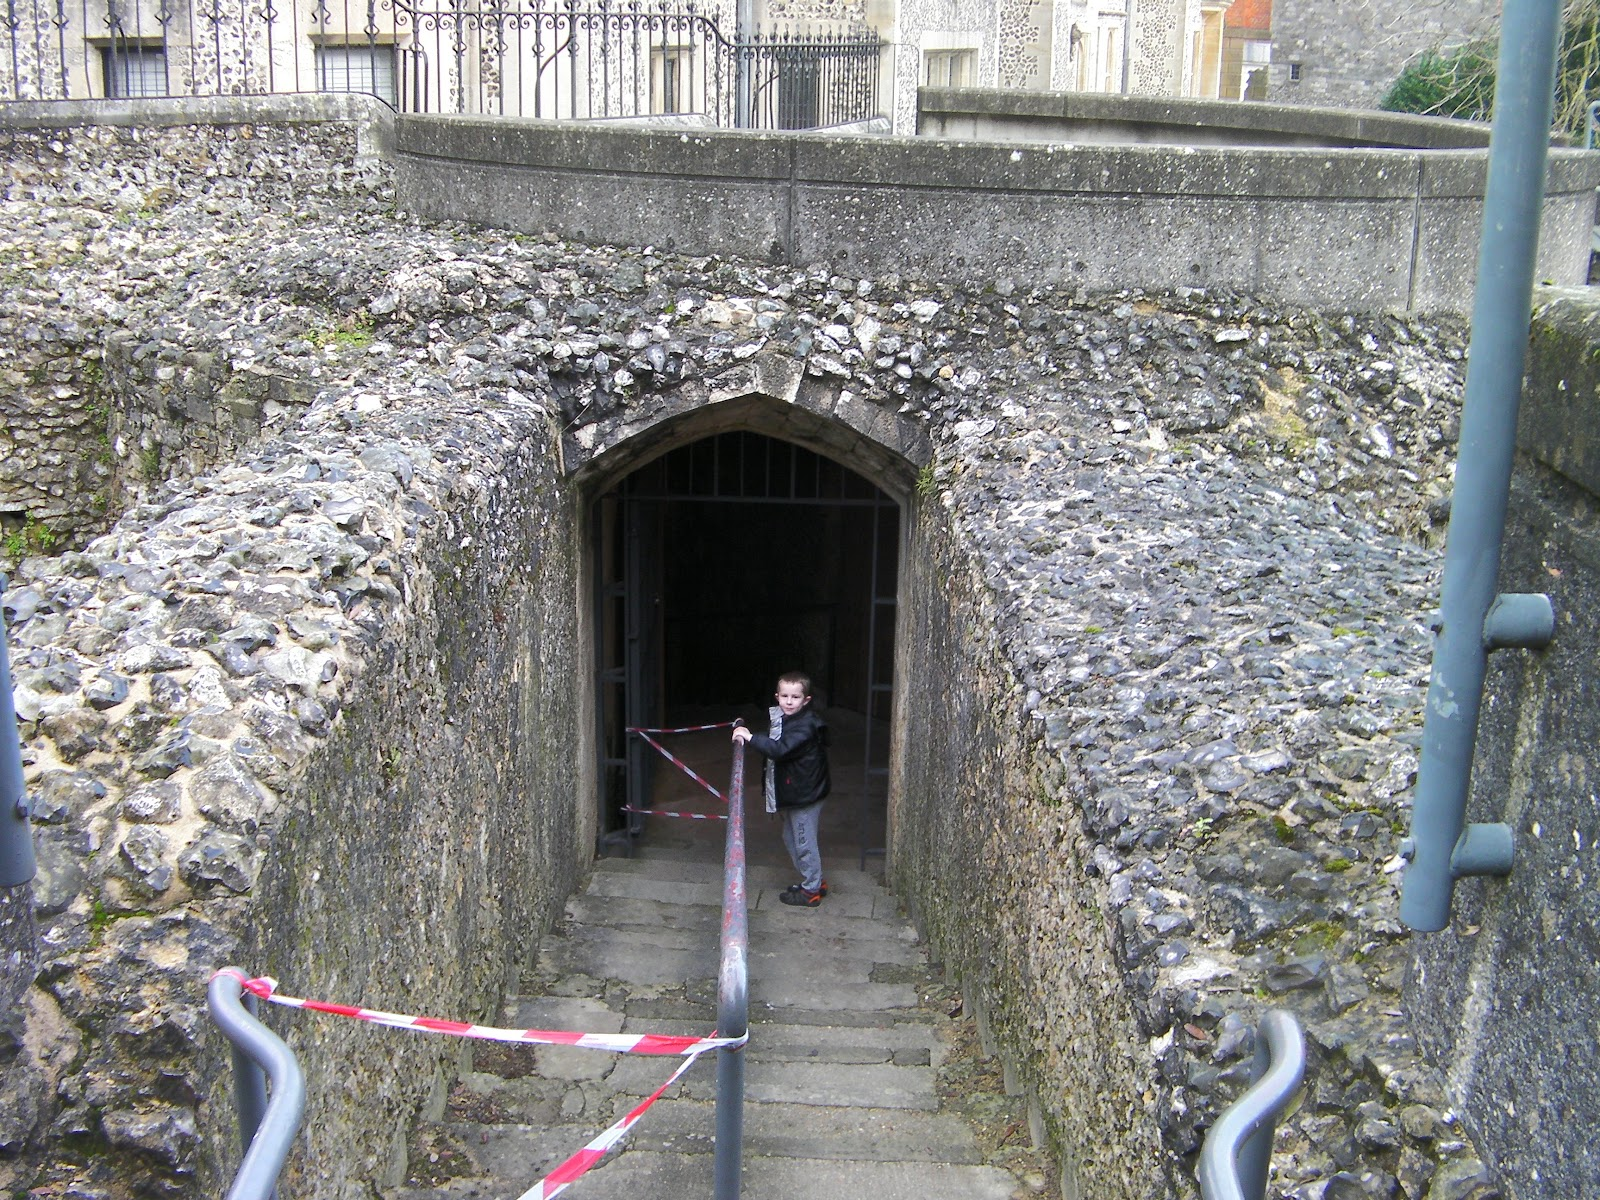 winchester castle tunnel and sally port under tower